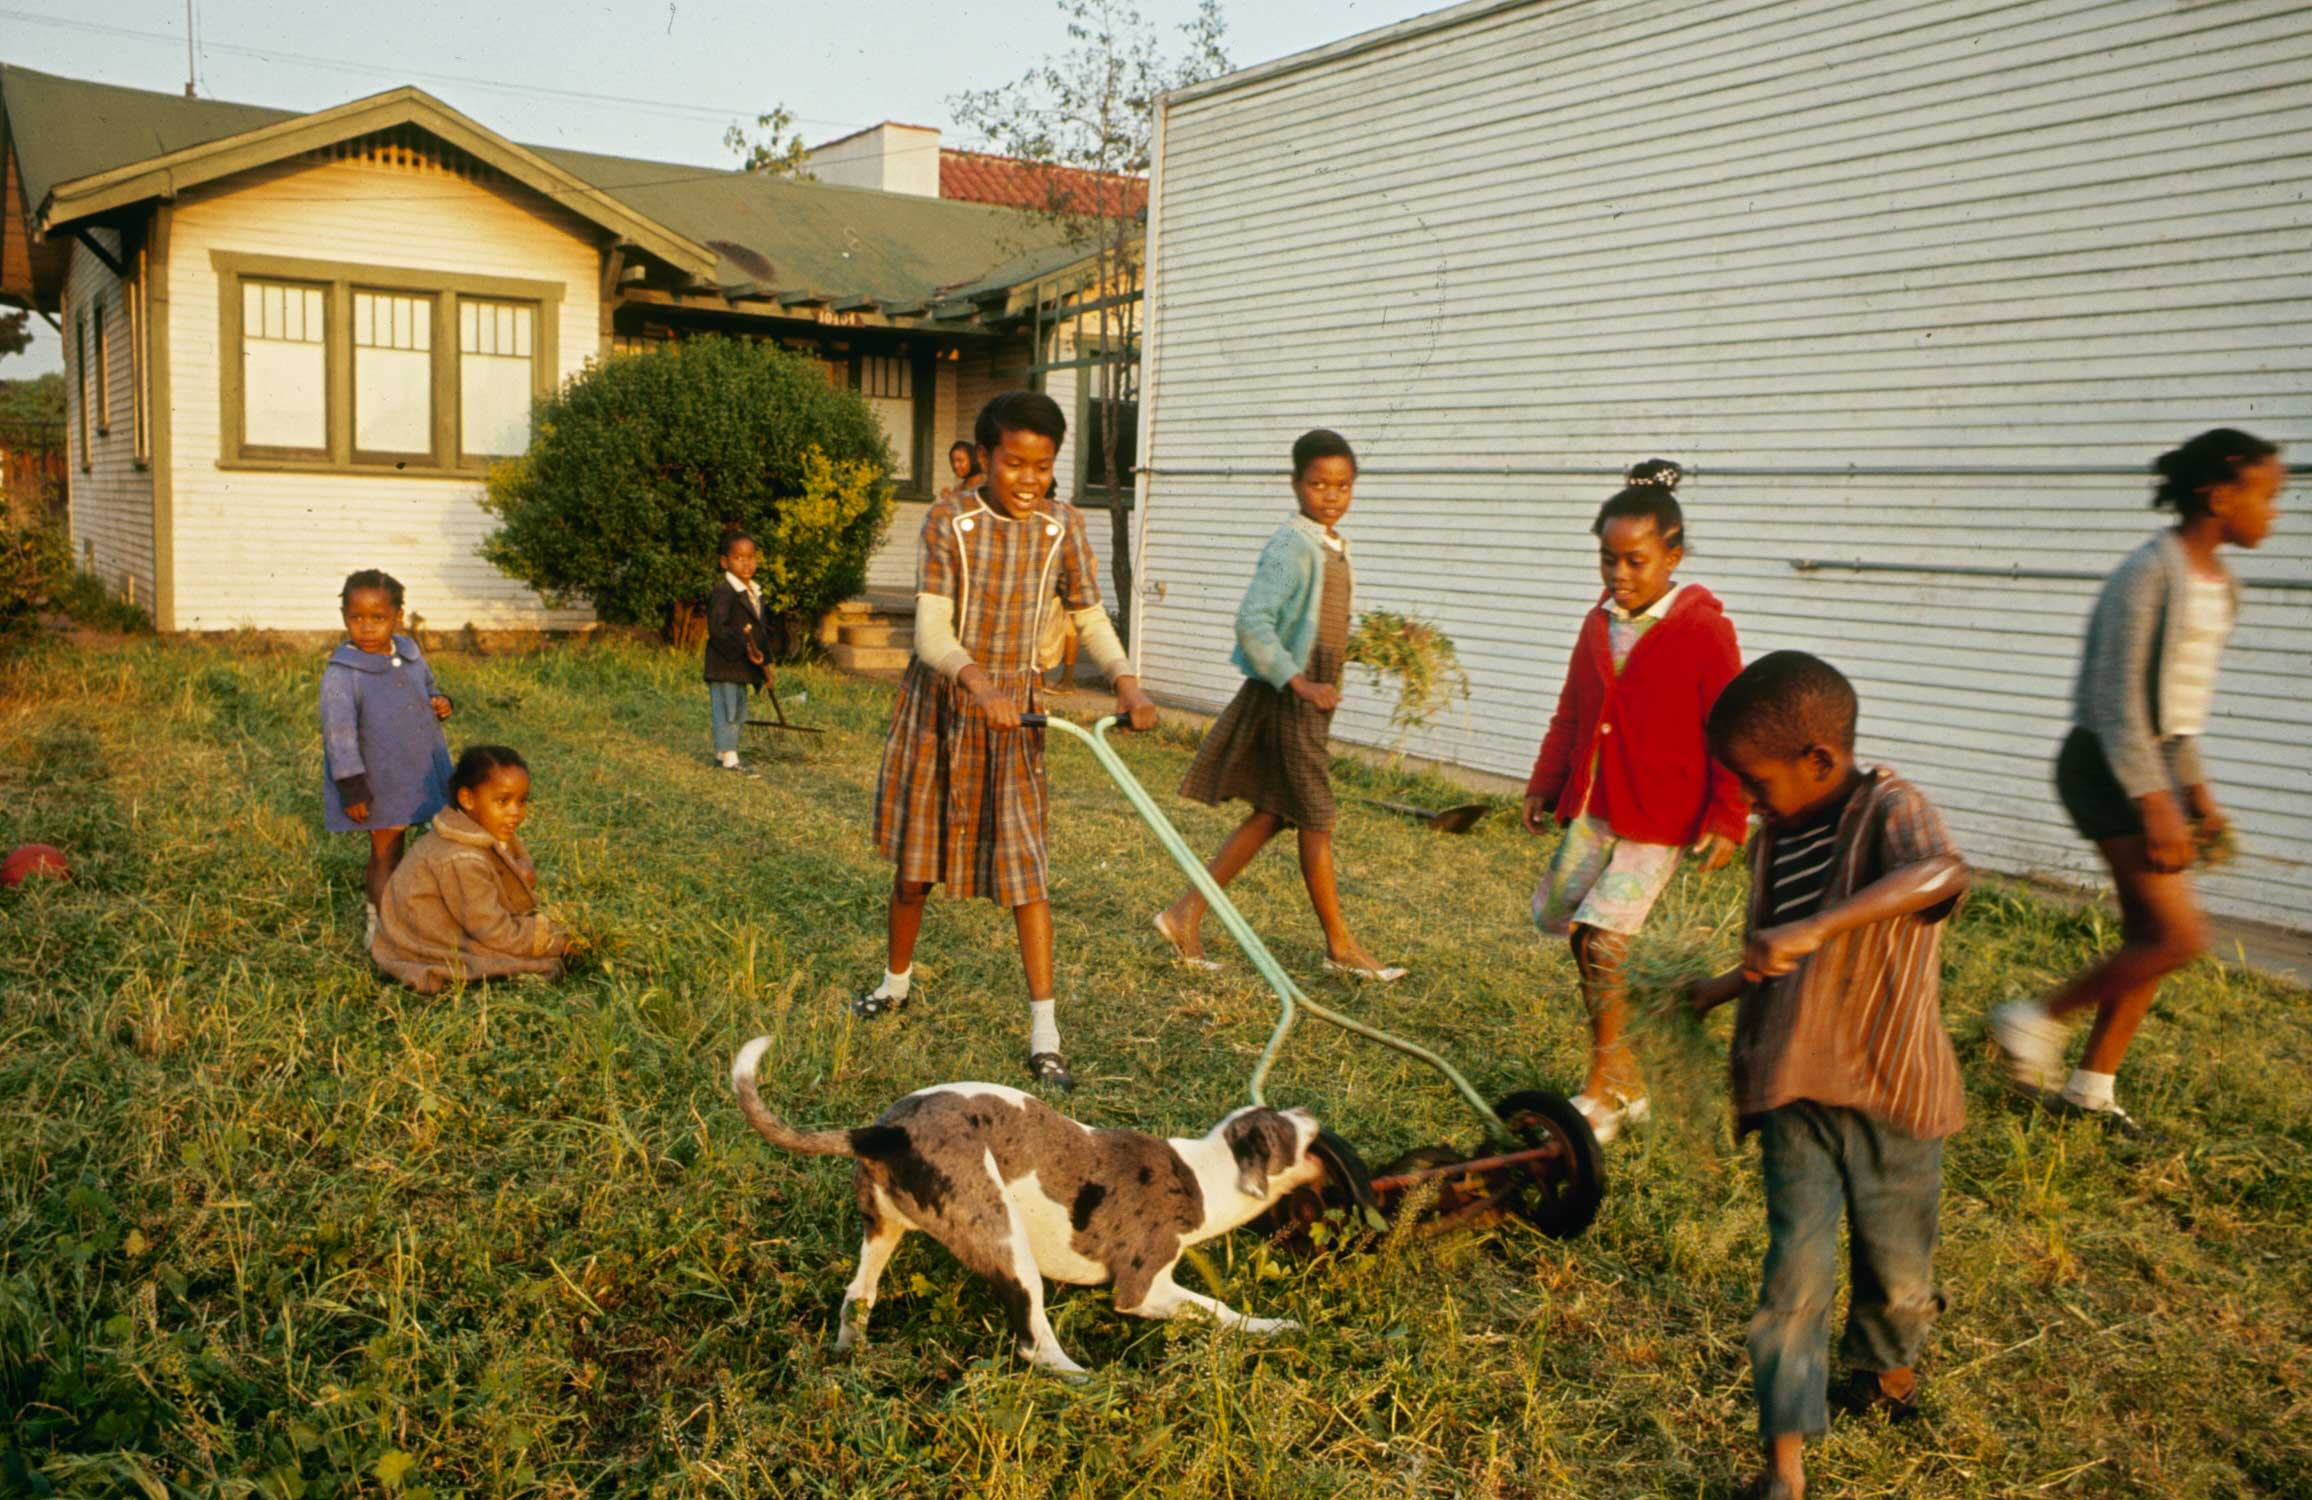 <b>Not published in LIFE.</b> Children at play, Watts, Los Angeles, 1966.